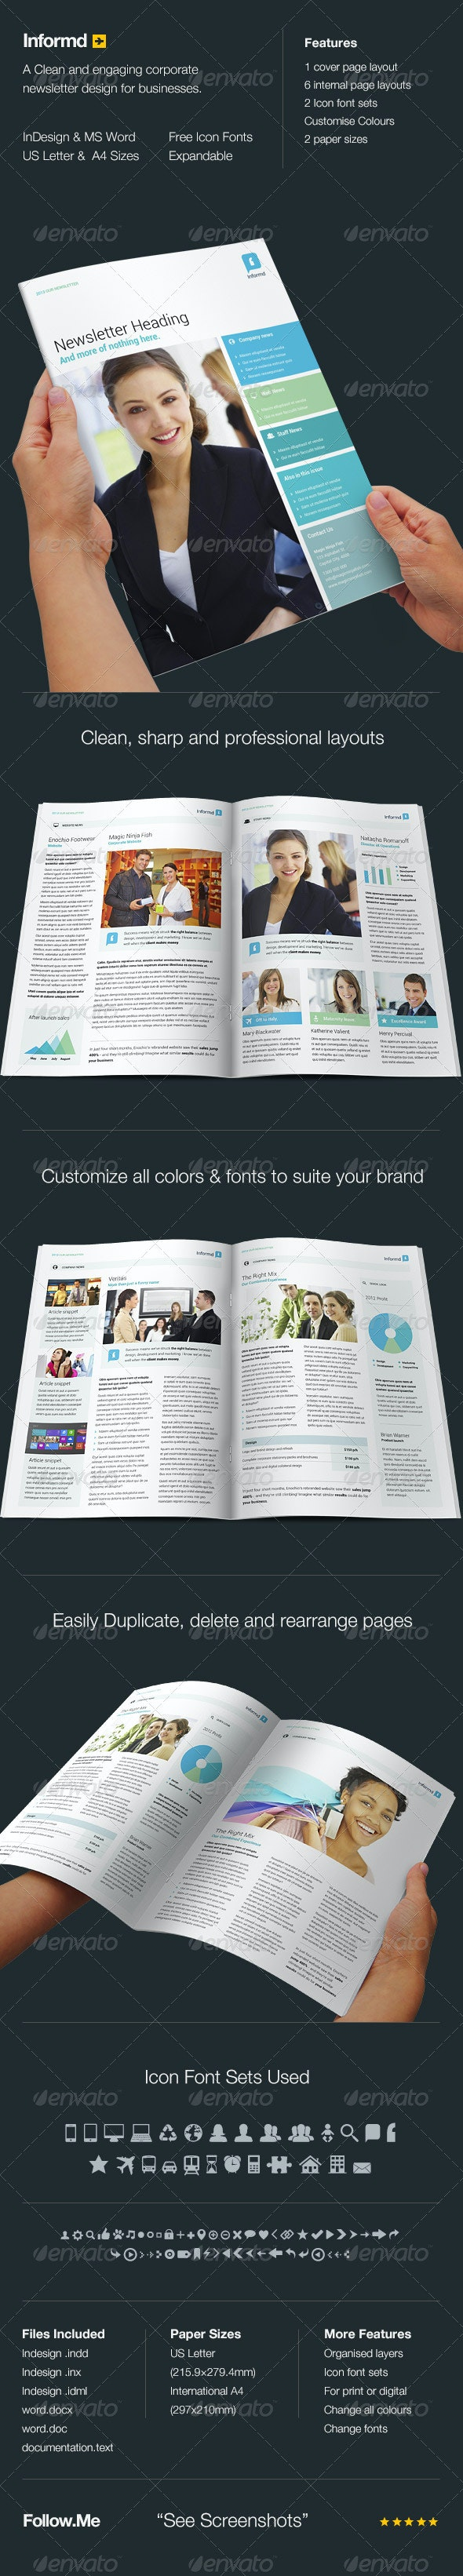 Informd - Newsletter Template - Newsletters Print Templates